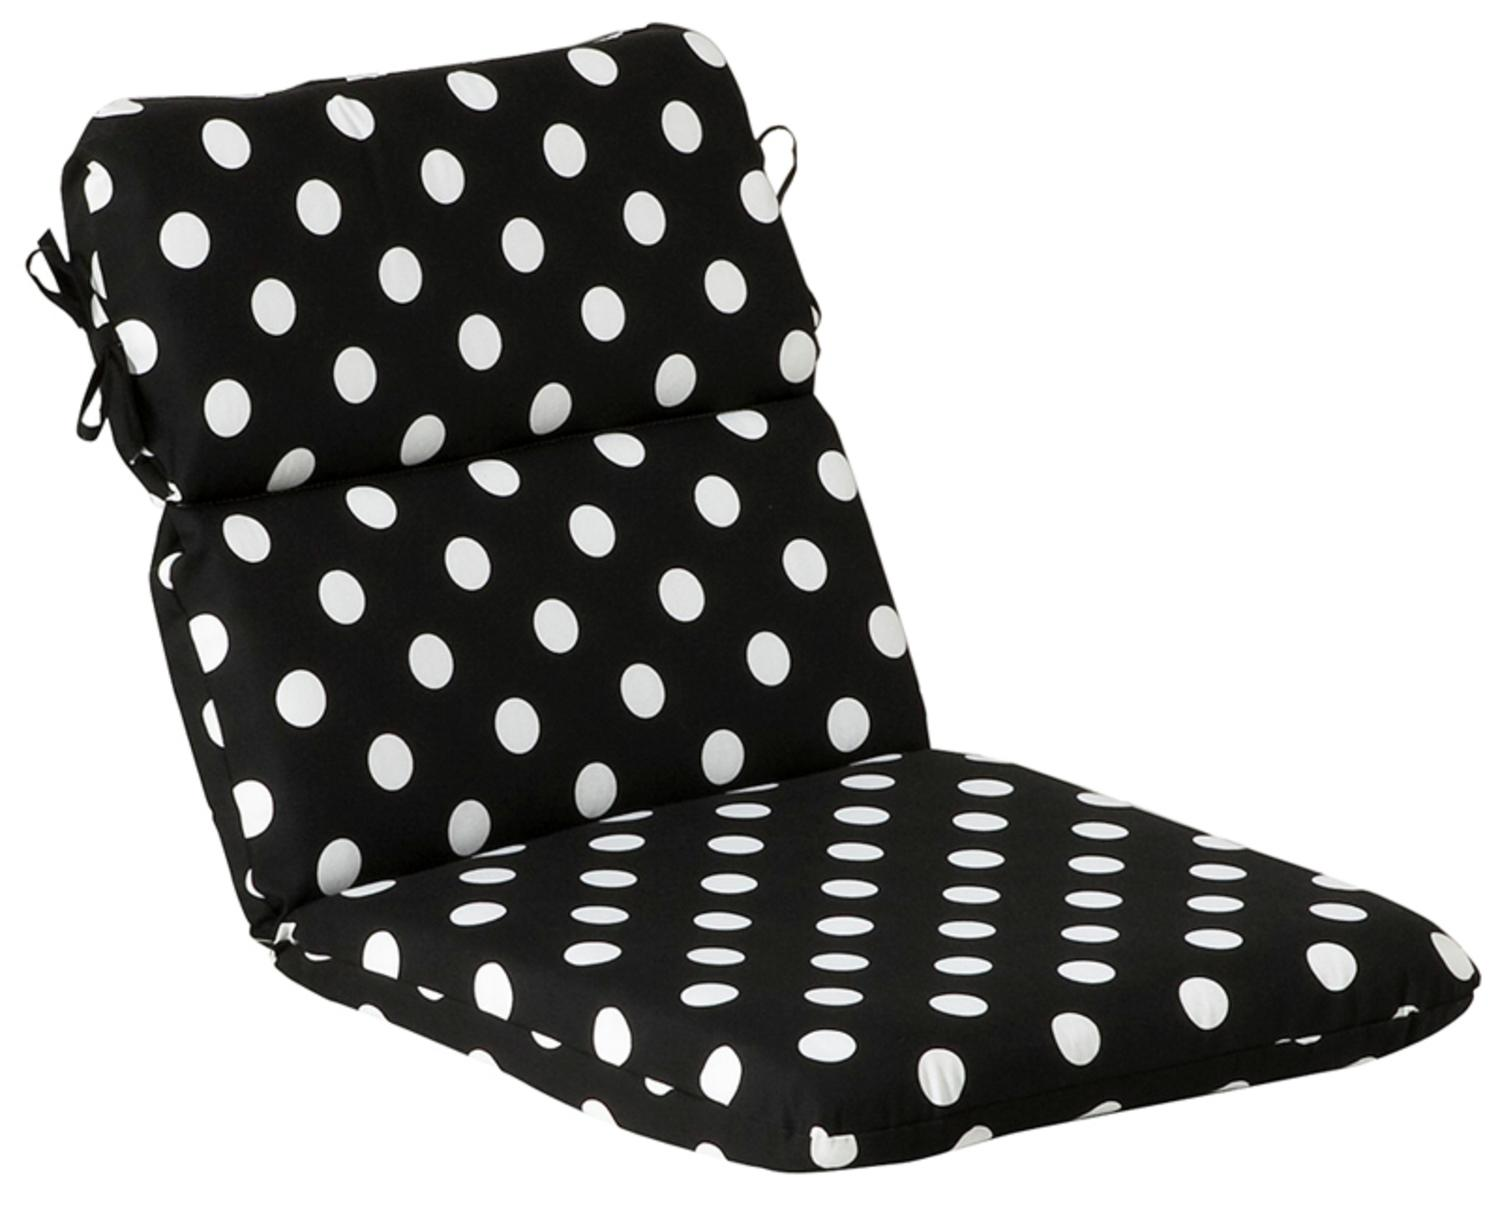 Merveilleux Outdoor Patio Furniture High Back Chair Cushion   Black U0026 White Polka Dot